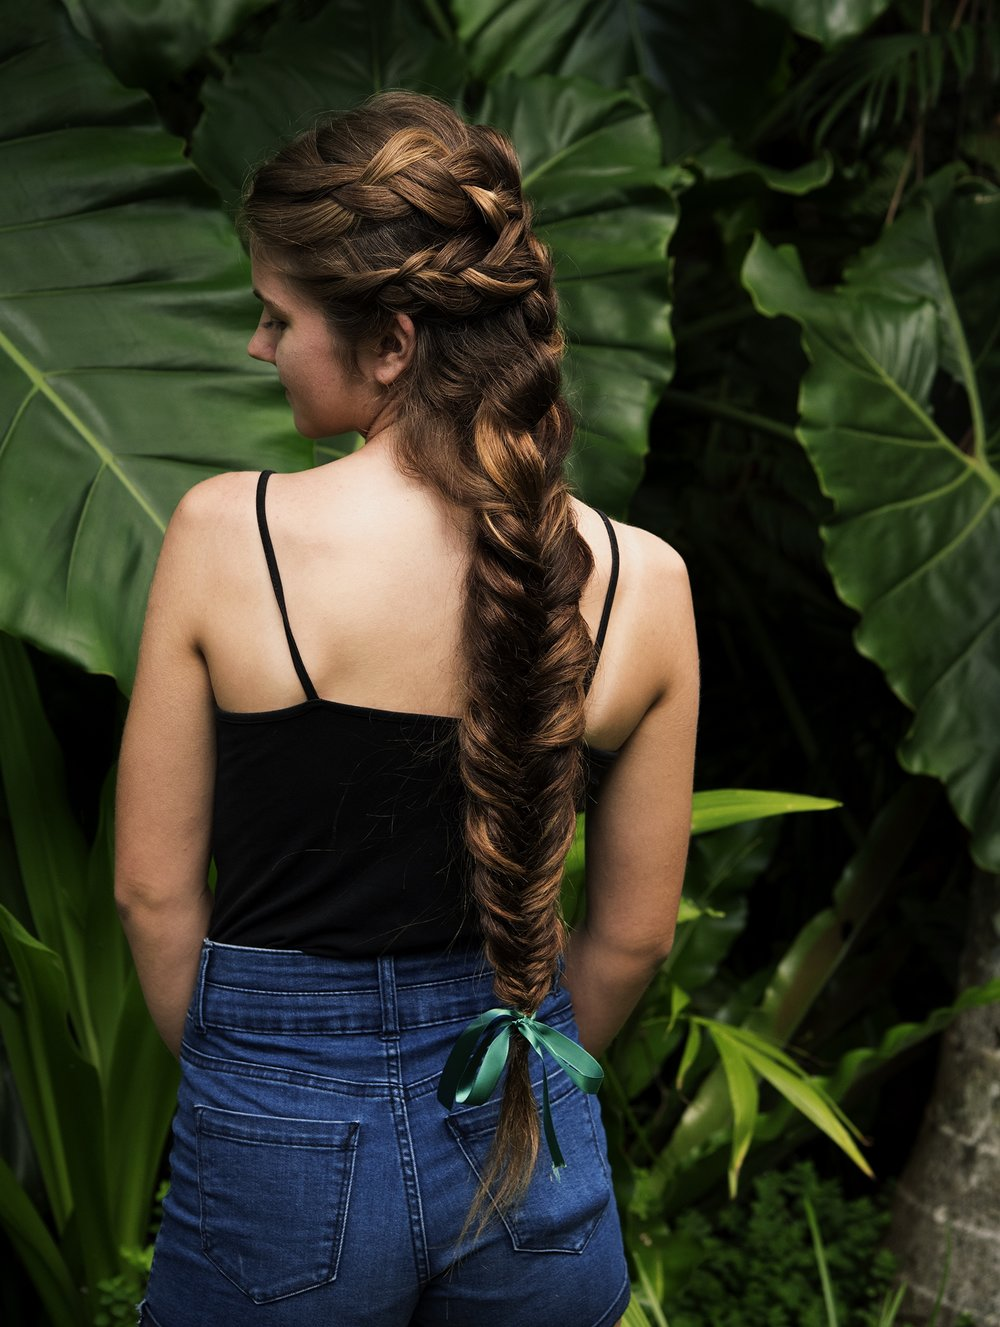 BRAIDS_ON_1938AZ Photography (1).jpg